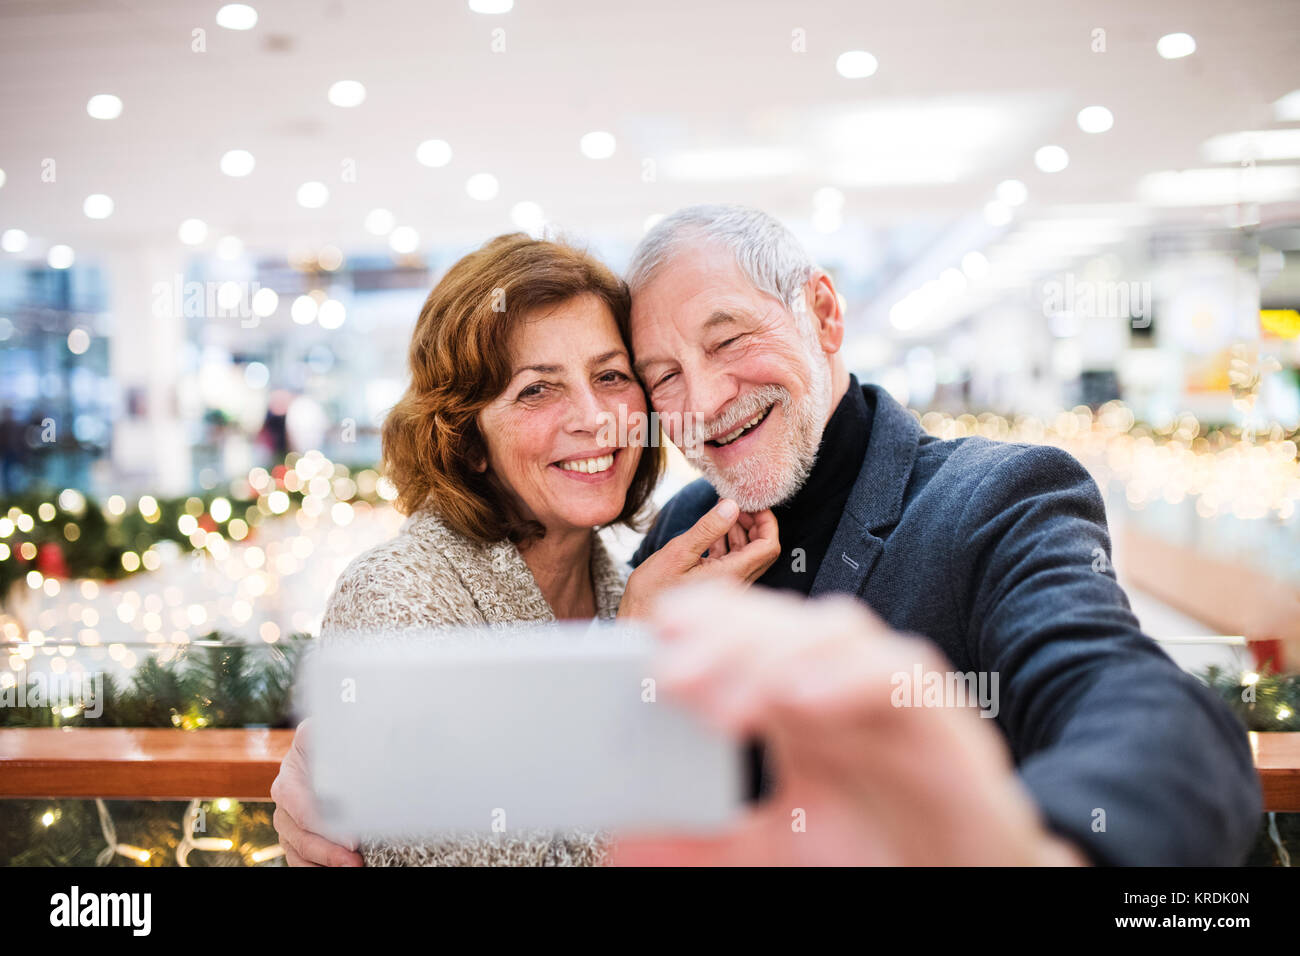 Senior Paar mit Smartphone, Christmas shopping. Stockbild